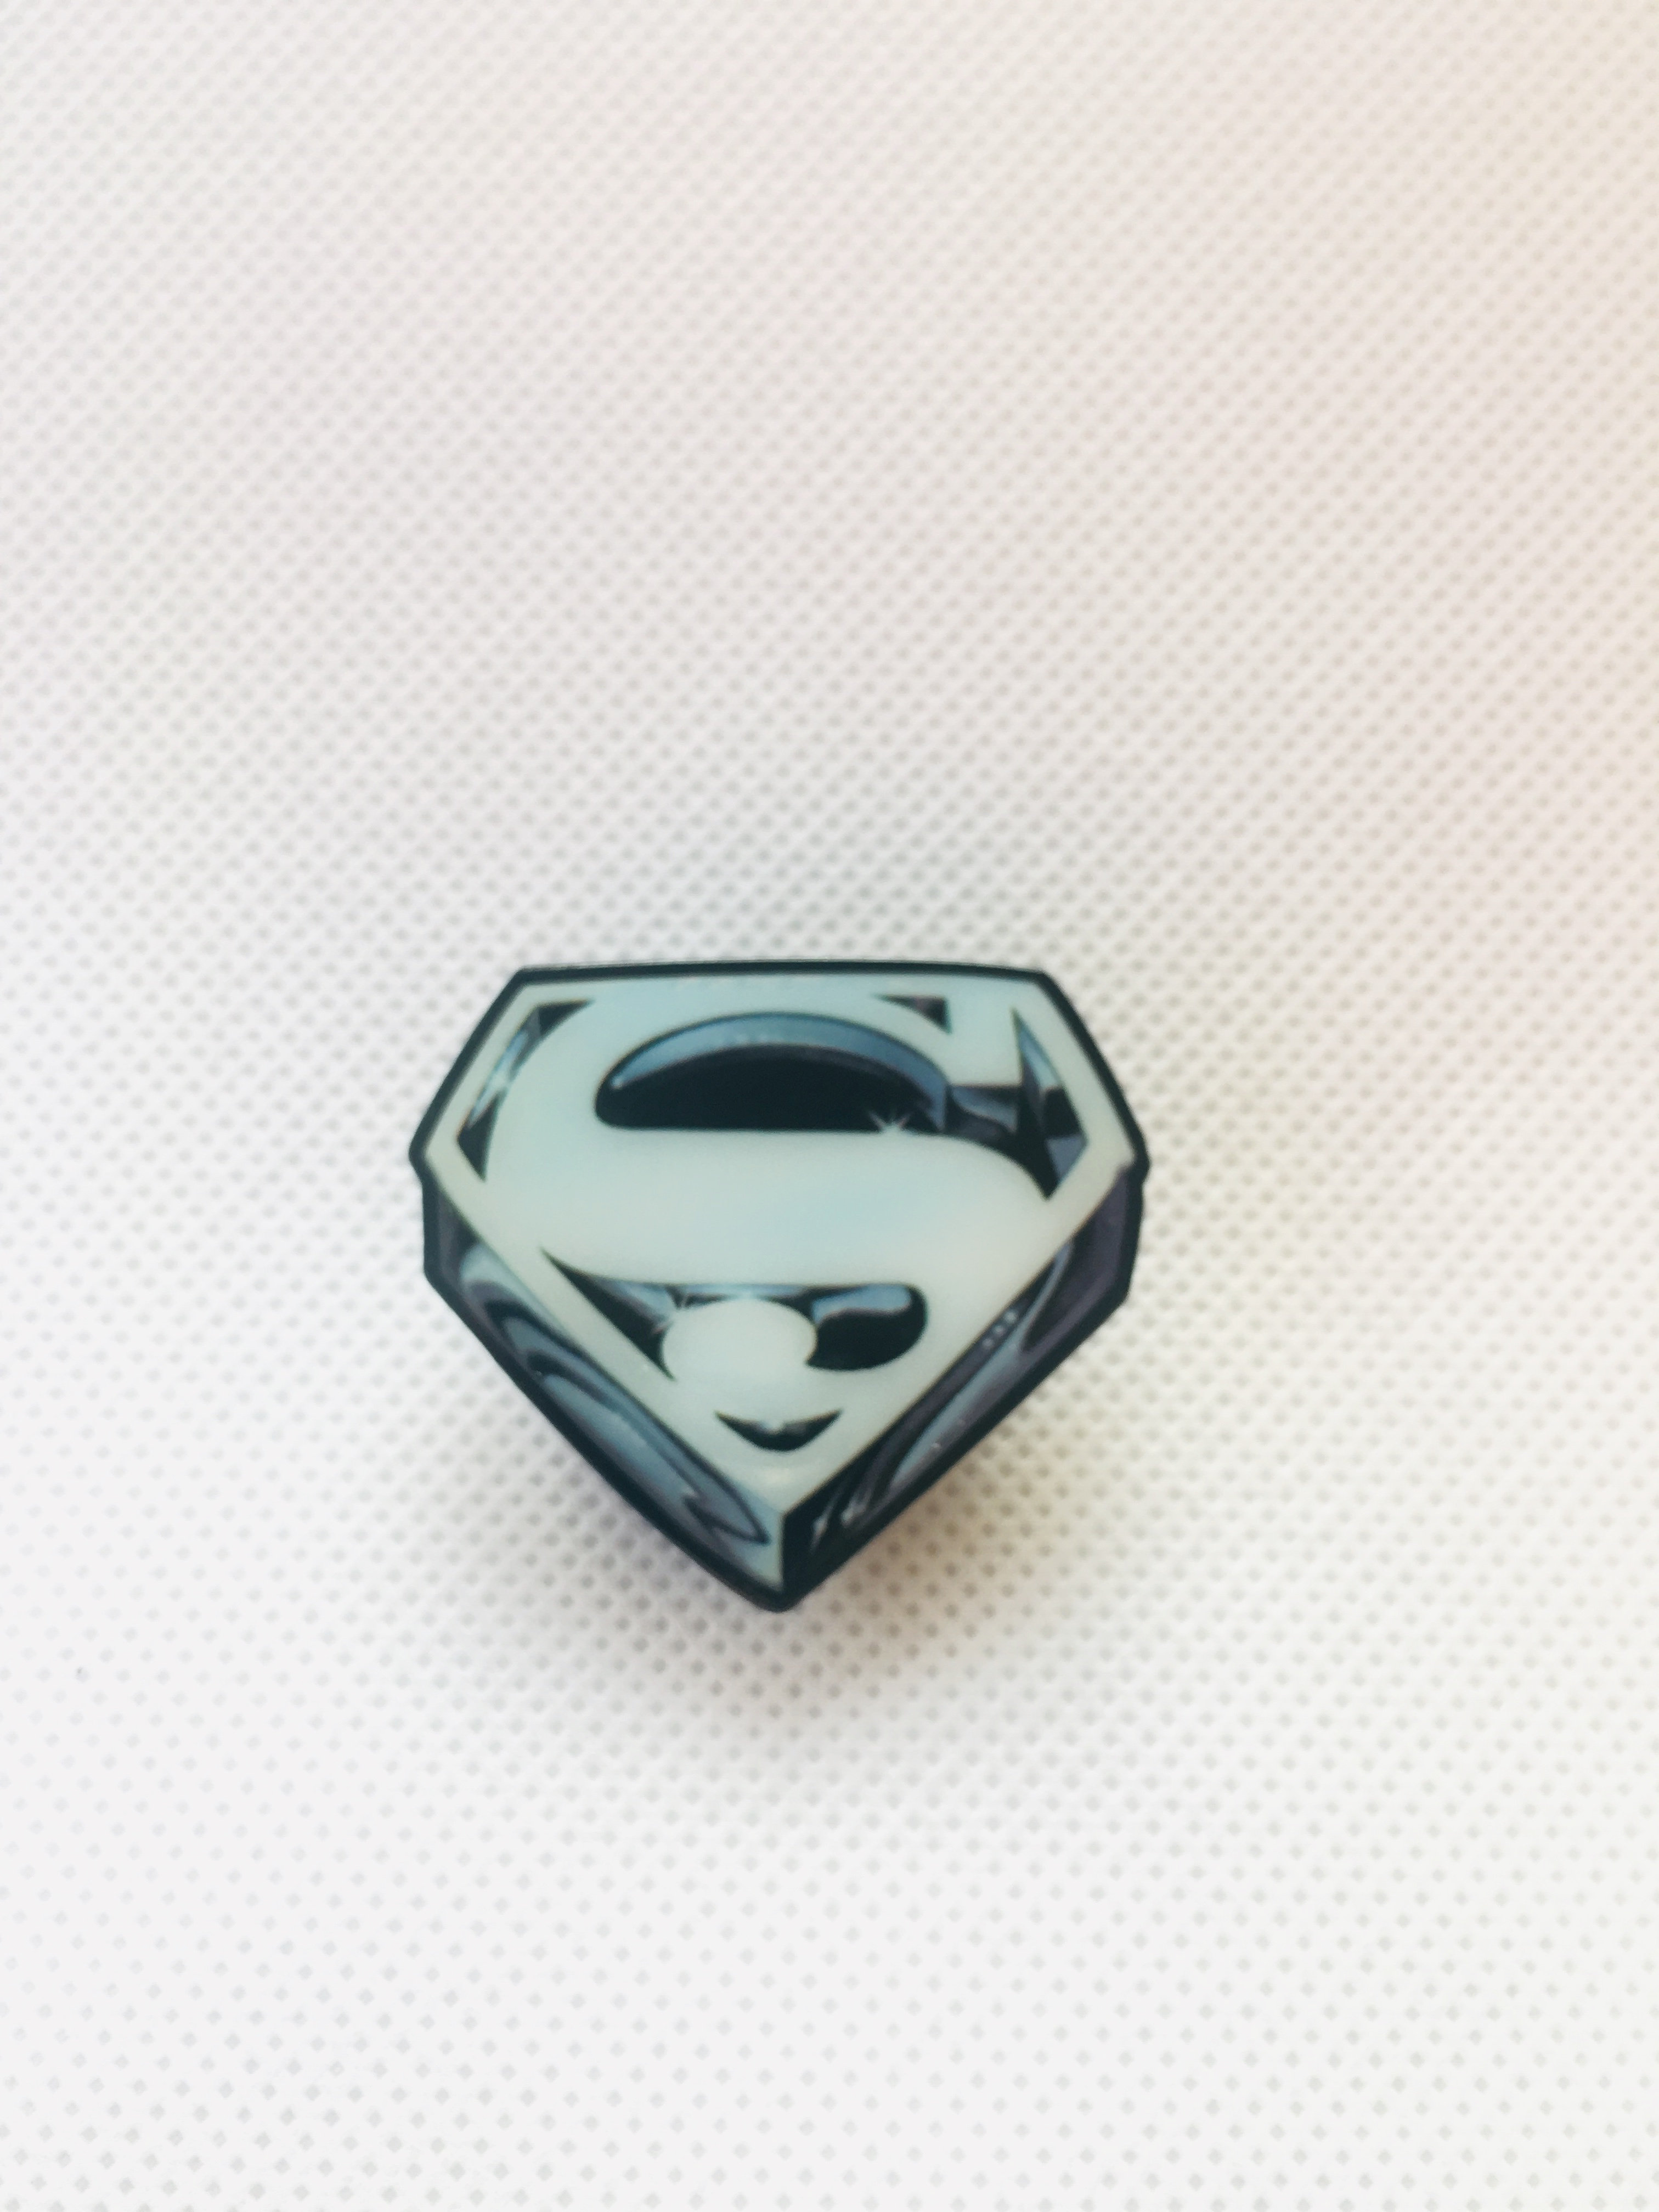 Superman The Movie Promotional Logo Pin | capedjusticejewelry